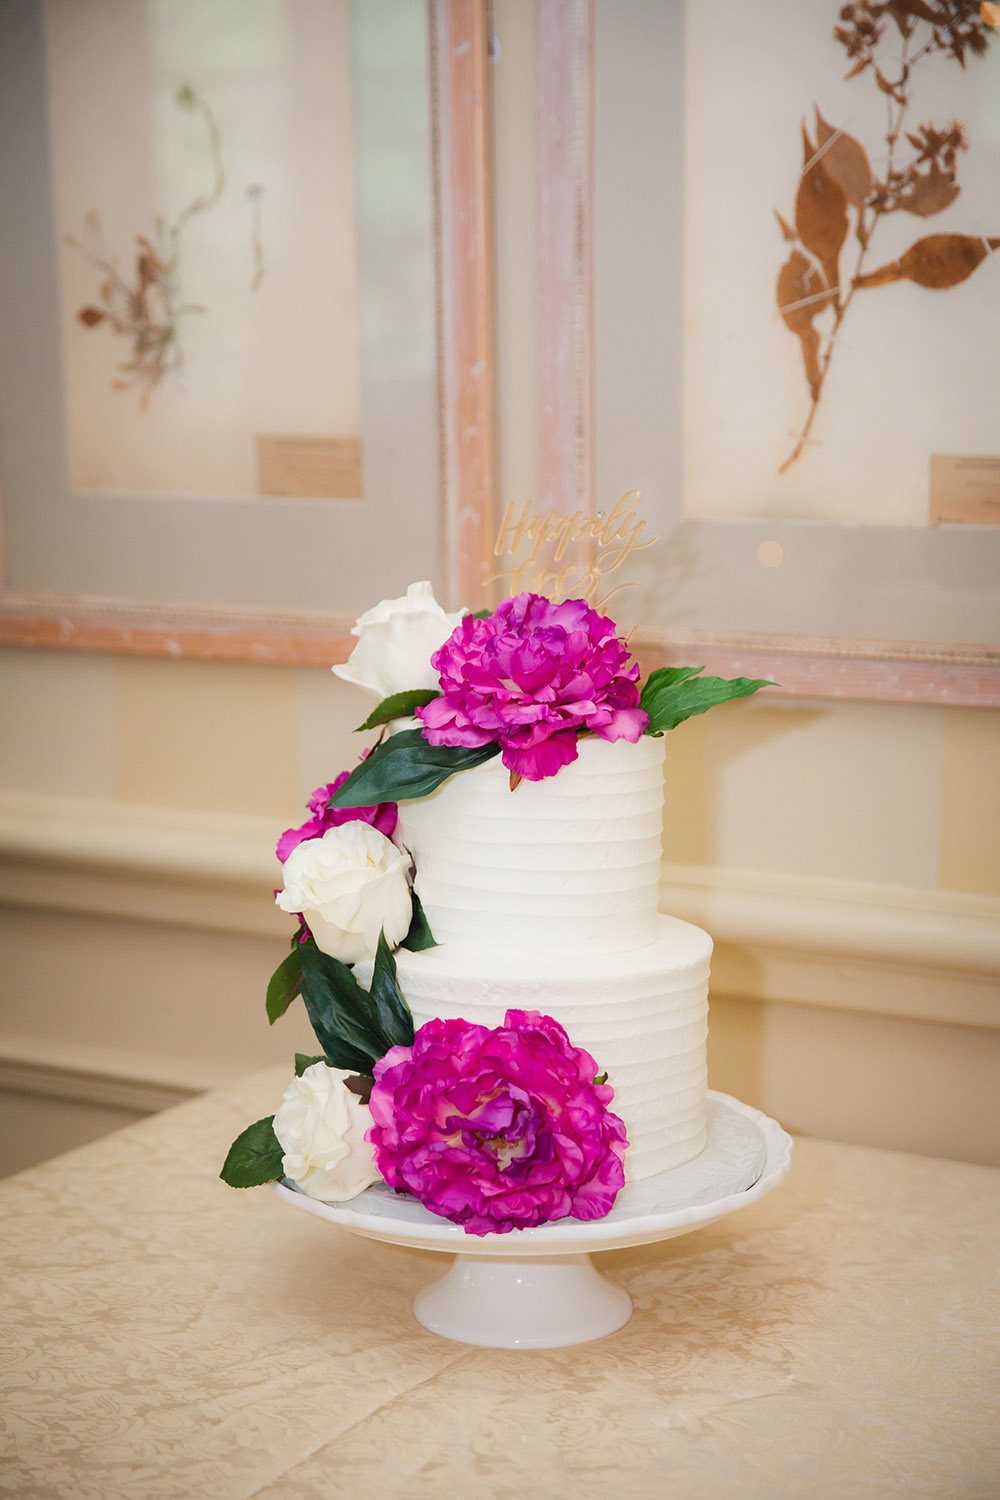 Kiara and Michael's wedding cake was embellished with beautiful fresh flowers in ivory and fuschia. Photo: Brian Jarreau Photography